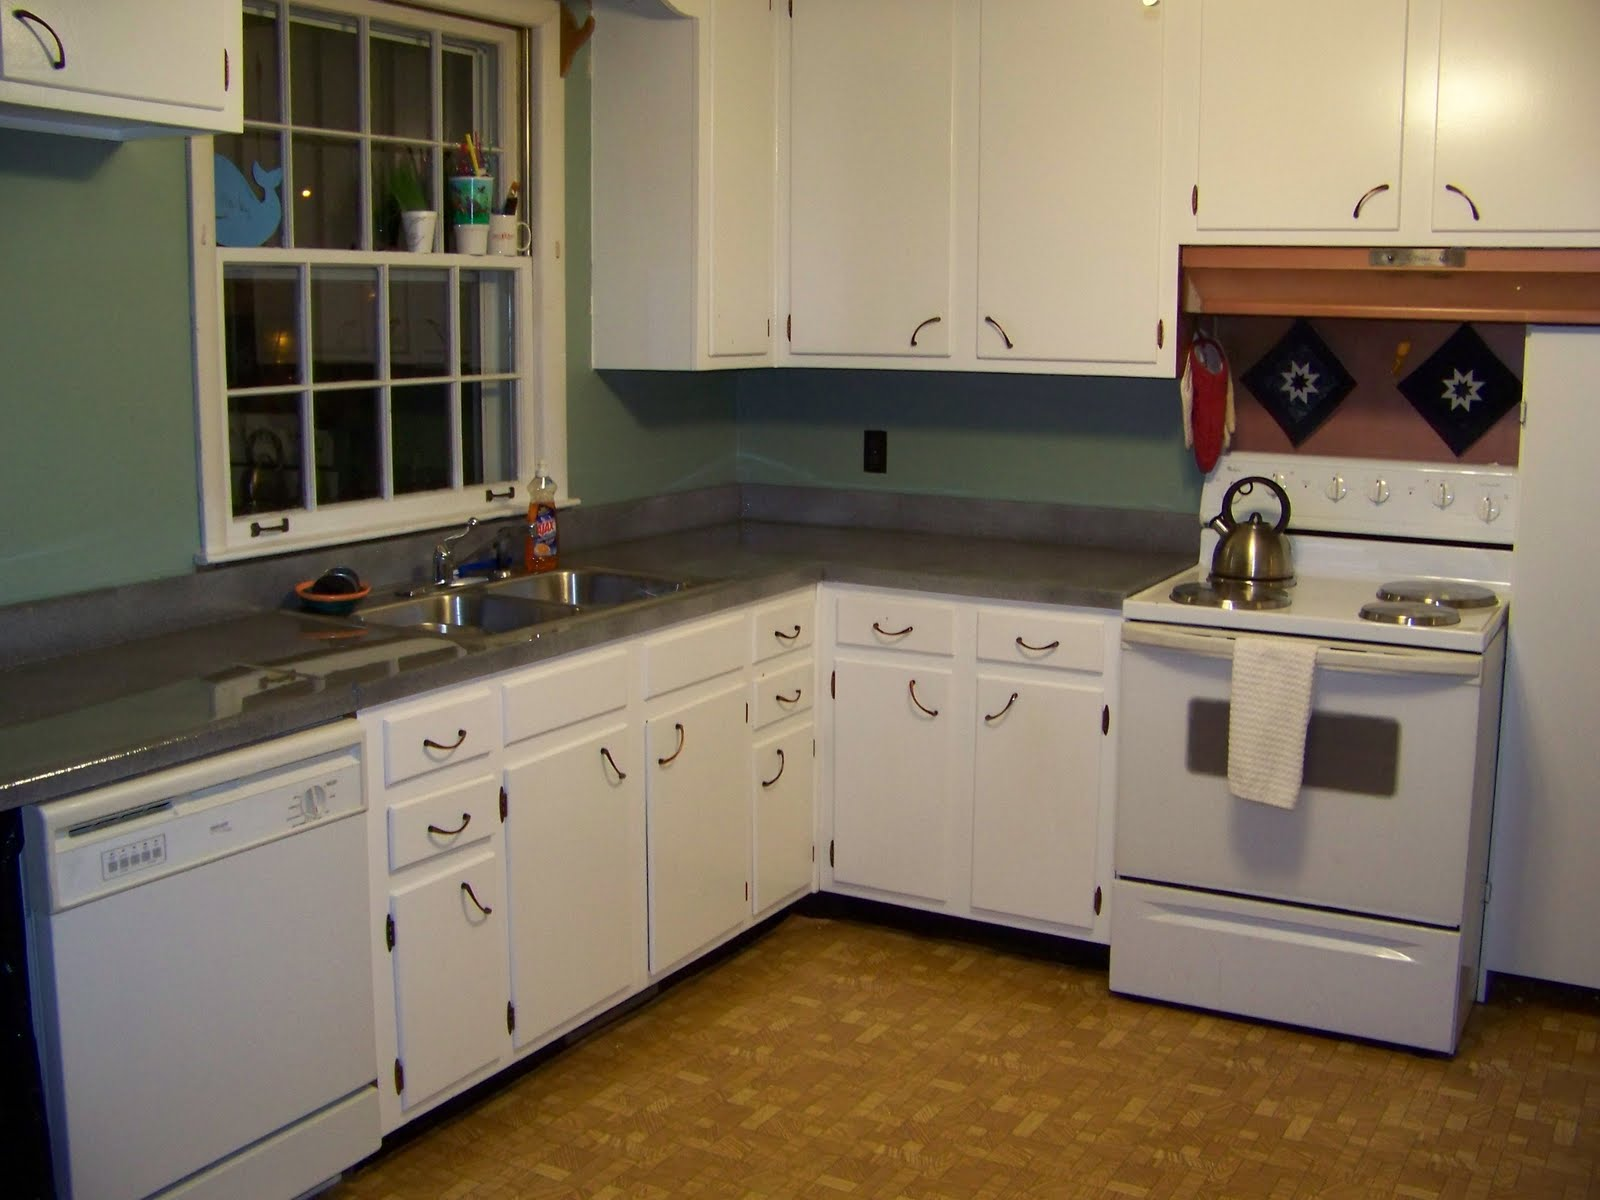 Laminate kitchen countertops pictures - Premade Laminate Kitchen Countertops Tuesday March 23